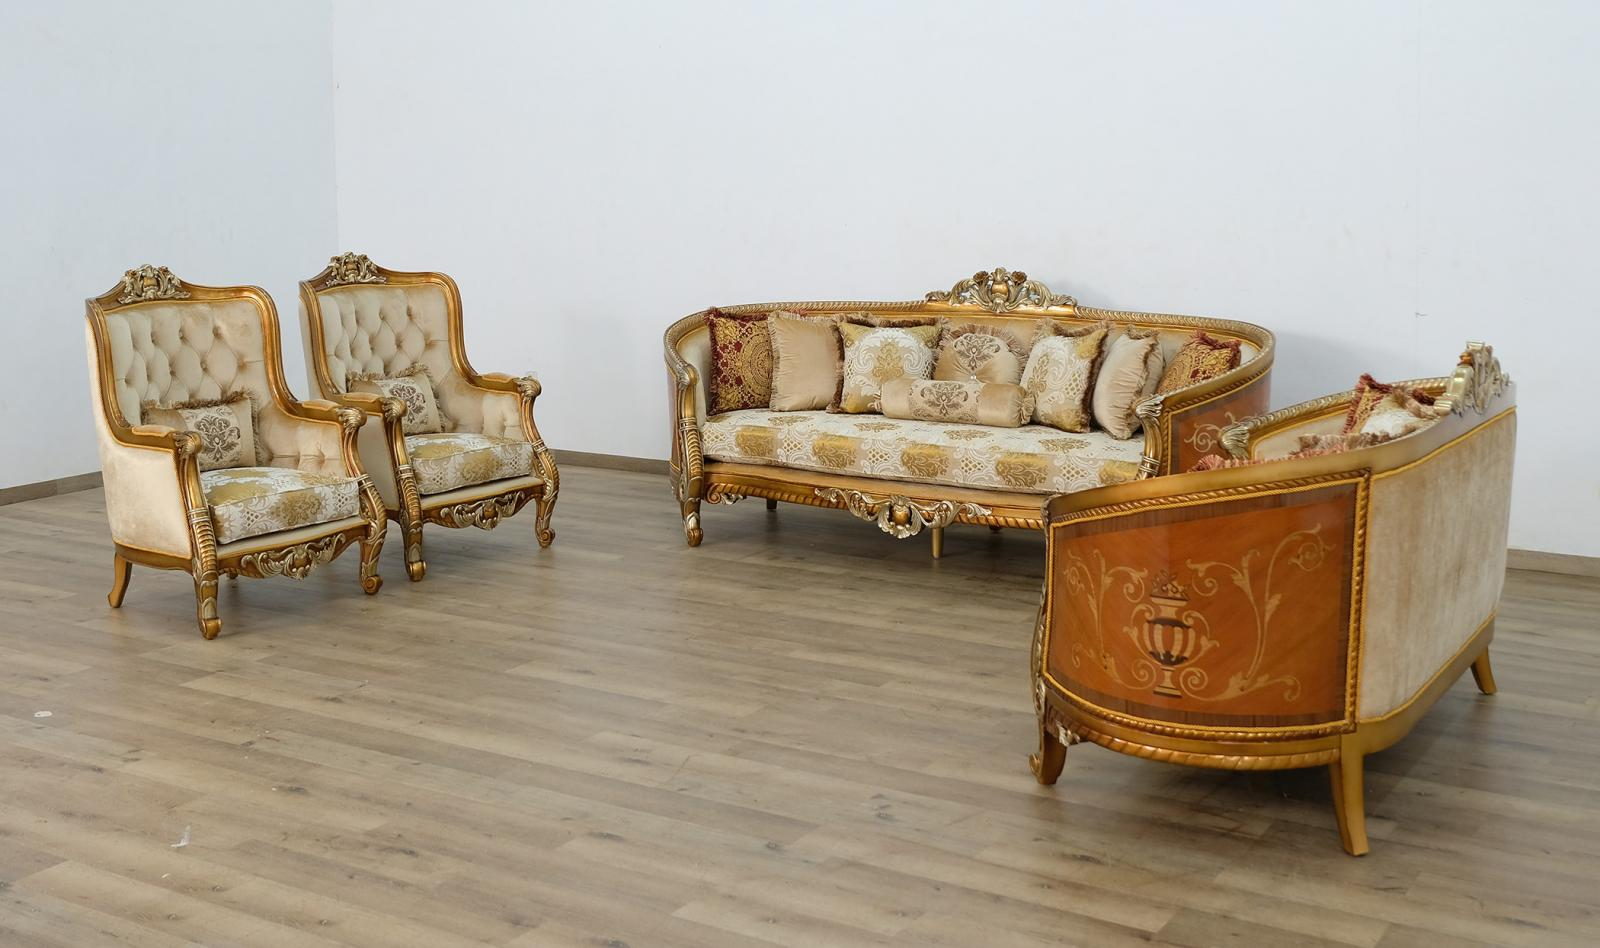 Classic  Traditional Brown  Gold  Antique Wood  Solid Hardwood and Fabric Sofa Set EUROPEAN FURNITURE 68587-S-Set-4